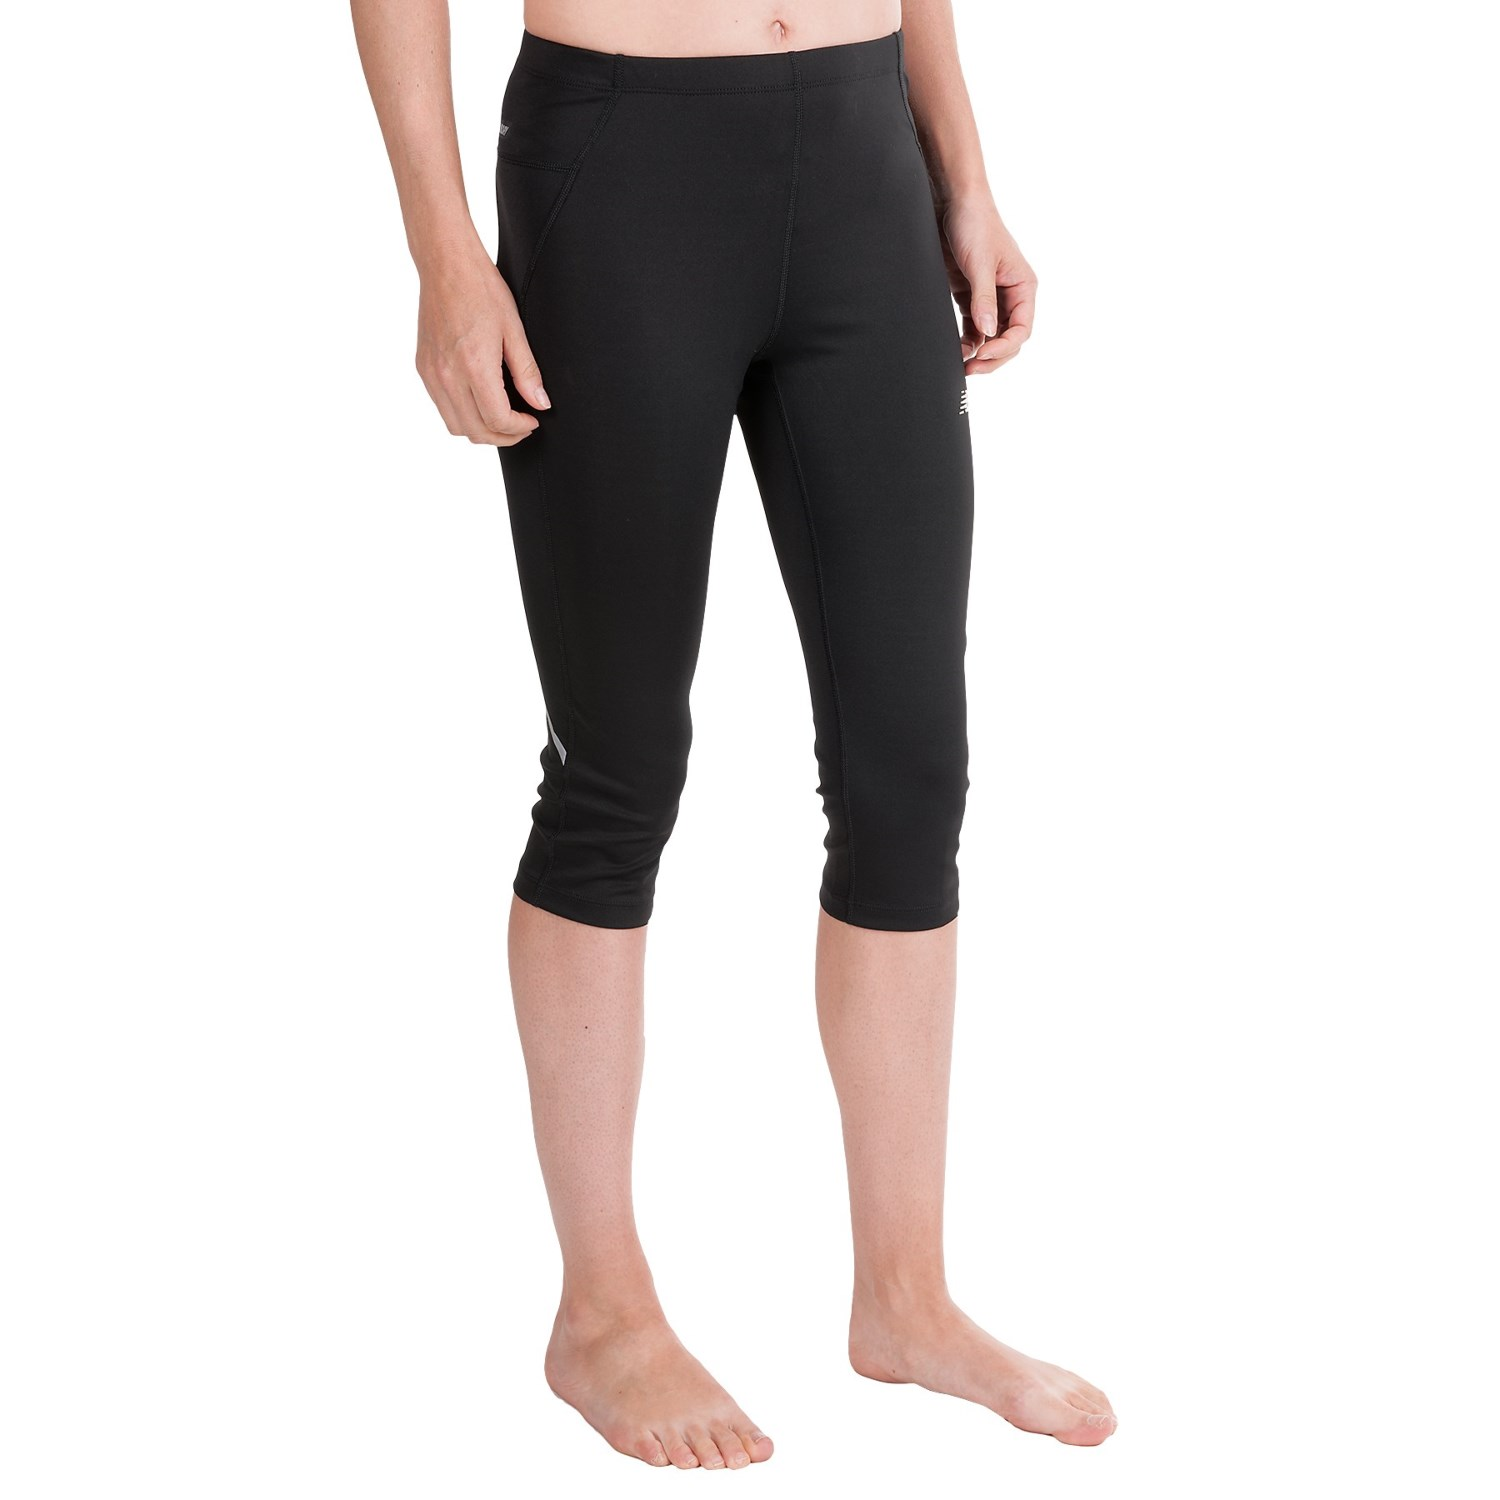 Find Running Capris at xajk8note.ml Enjoy free shipping and returns with NikePlus.